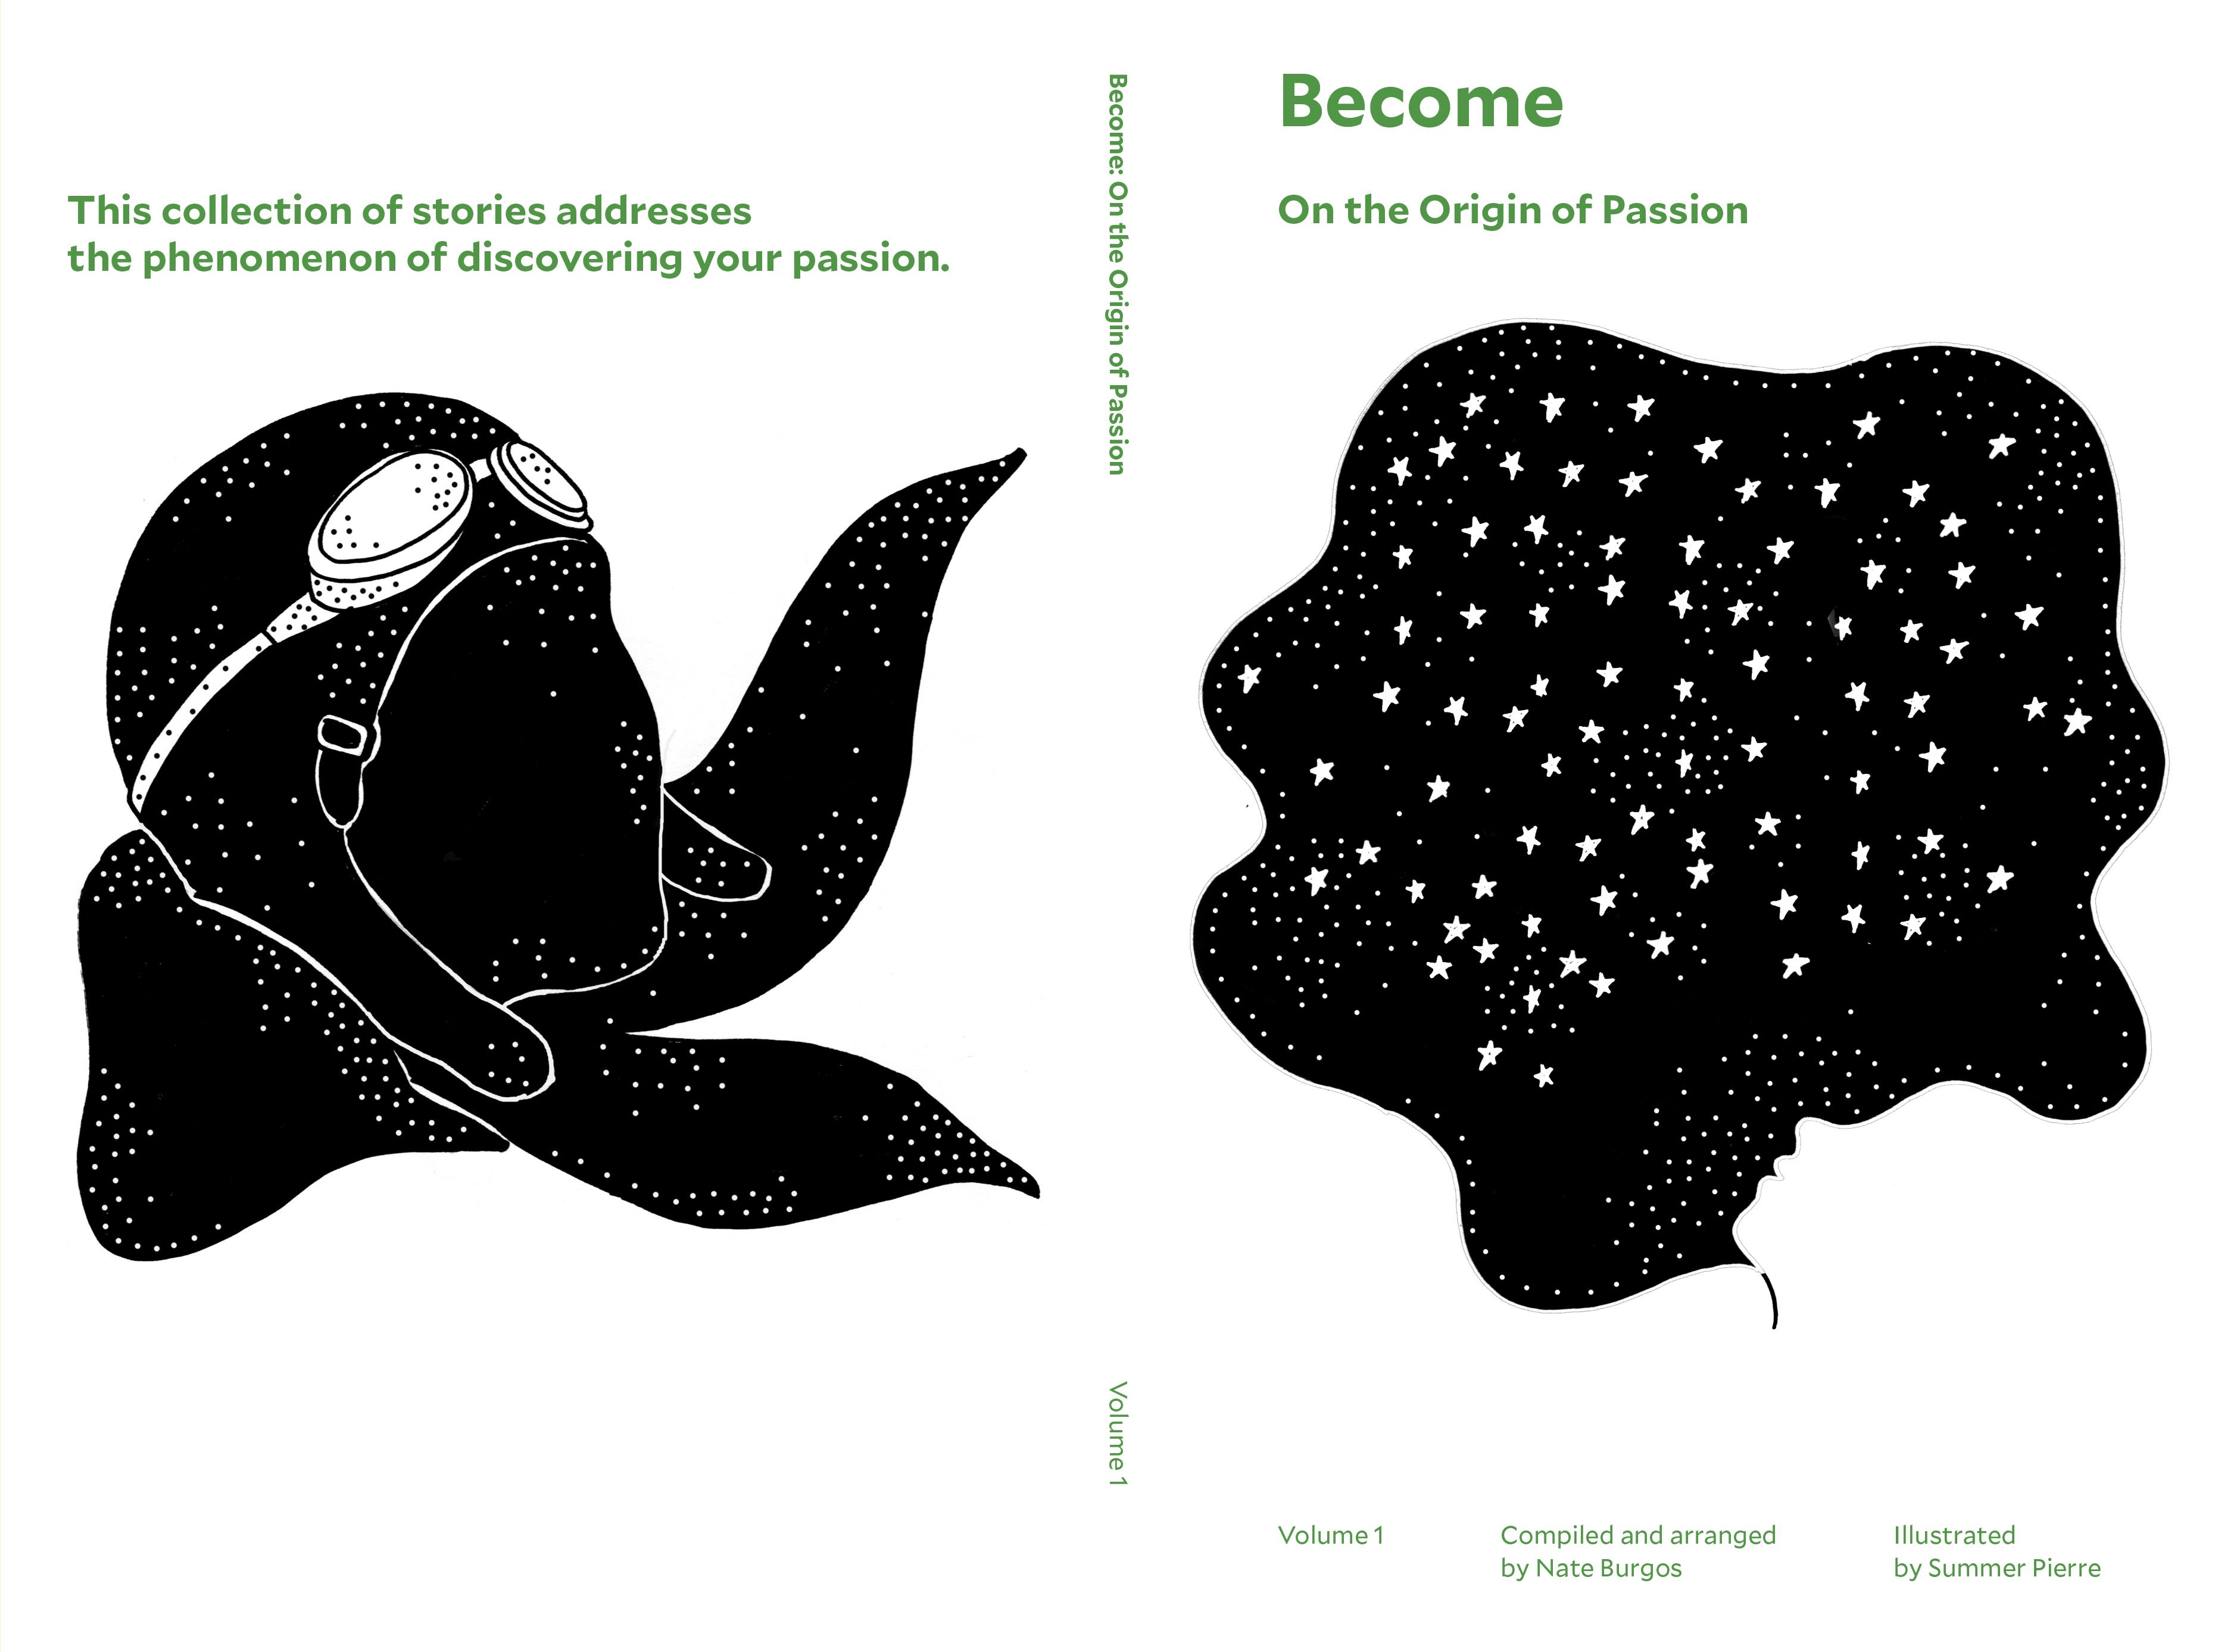 Become: On the Origin of Passion cover image